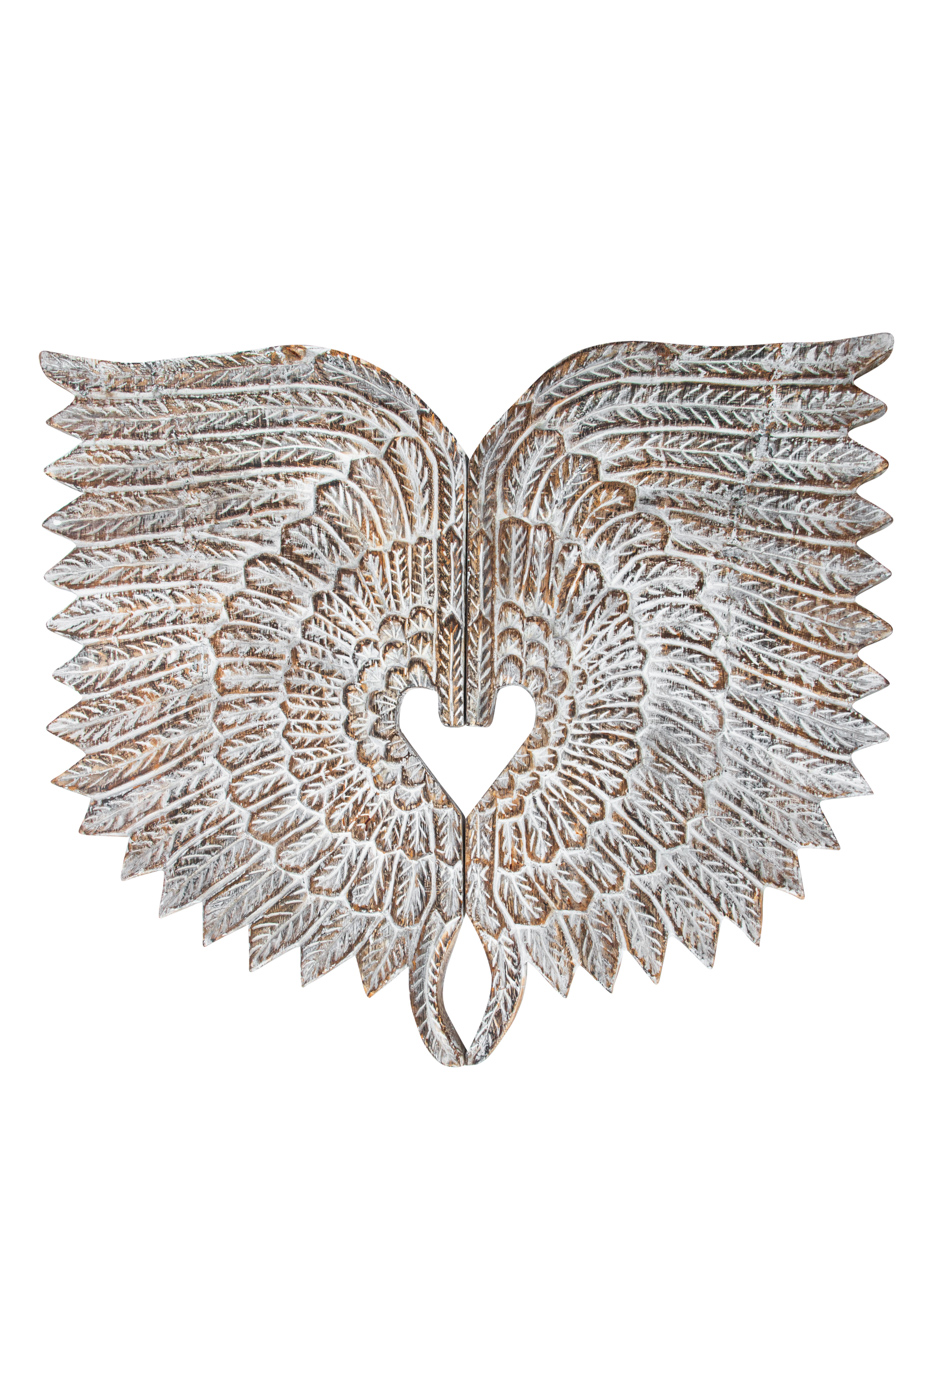 Decorative wings carved in wood